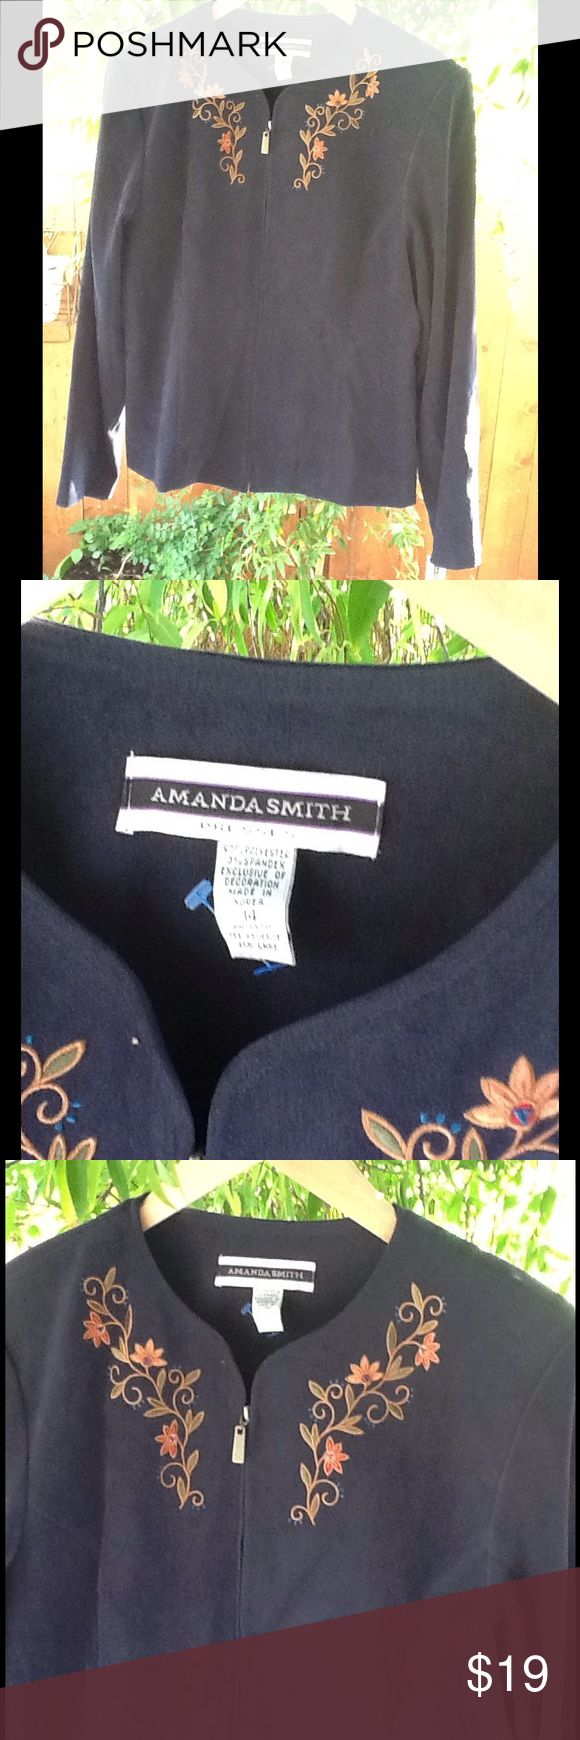 Women's Blazer Size 14 Large Sale Career Soft to the touch, velvet feel blazer. Perfect year round piece. Match with skinny jeans , skirt or high waist trousers. Amanda Smith Jackets & Coats Blazers